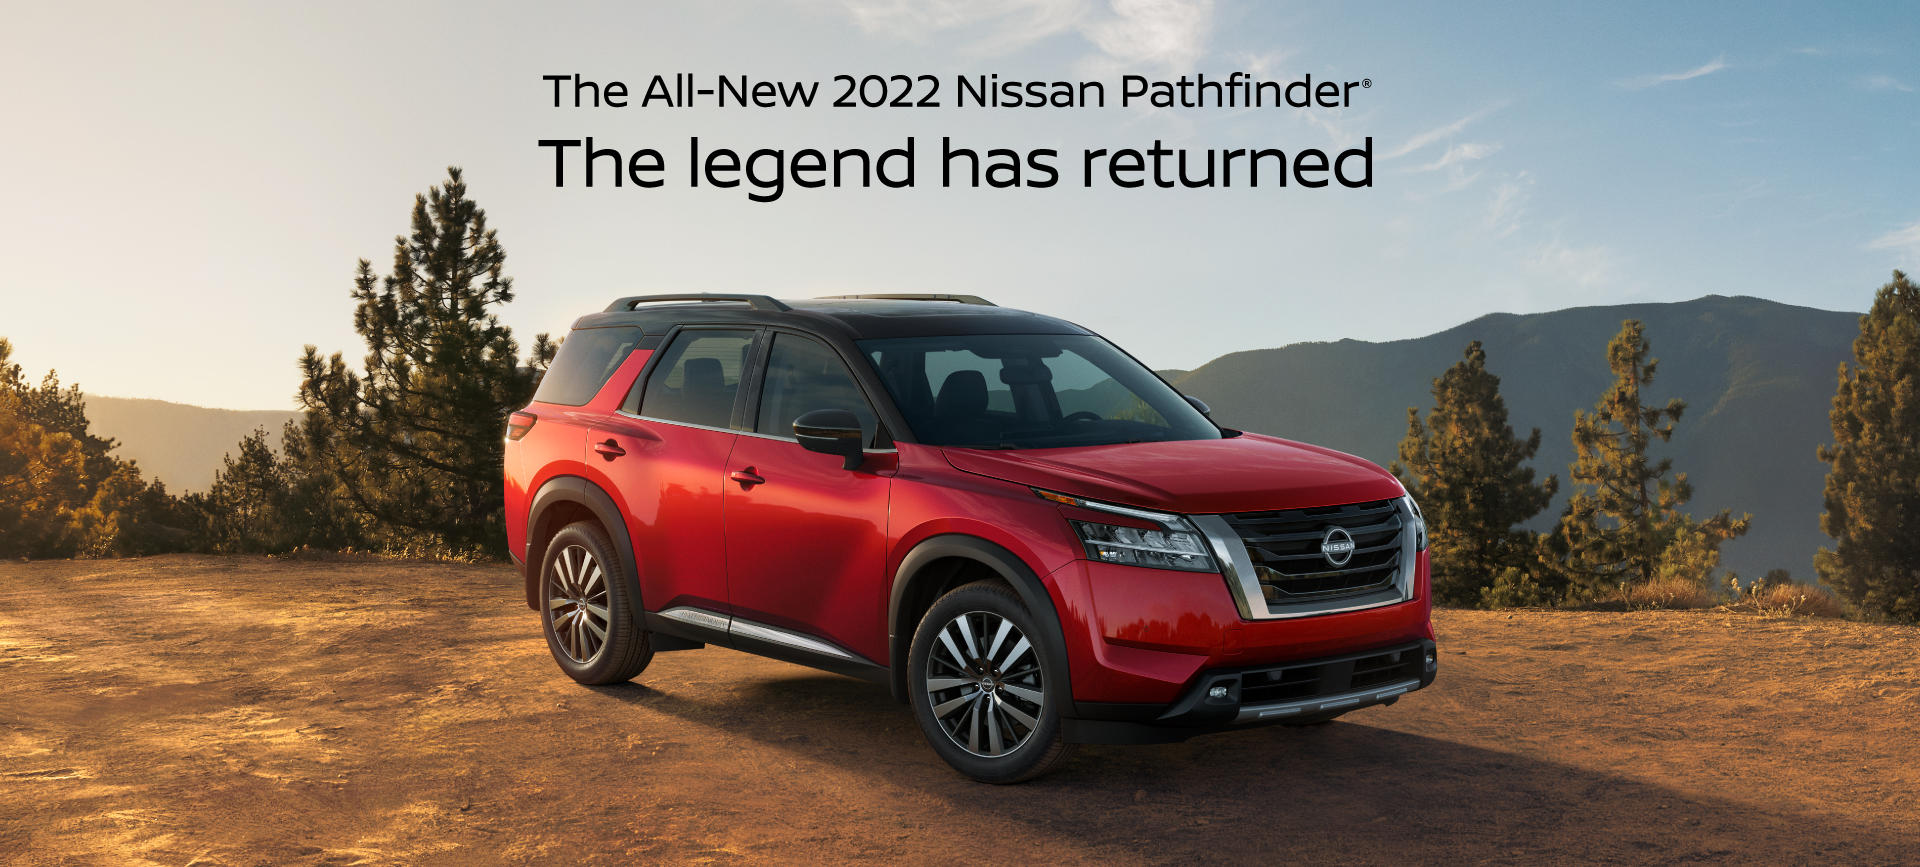 Nissan Pathfinder on clay road with green, mountainous backdrop